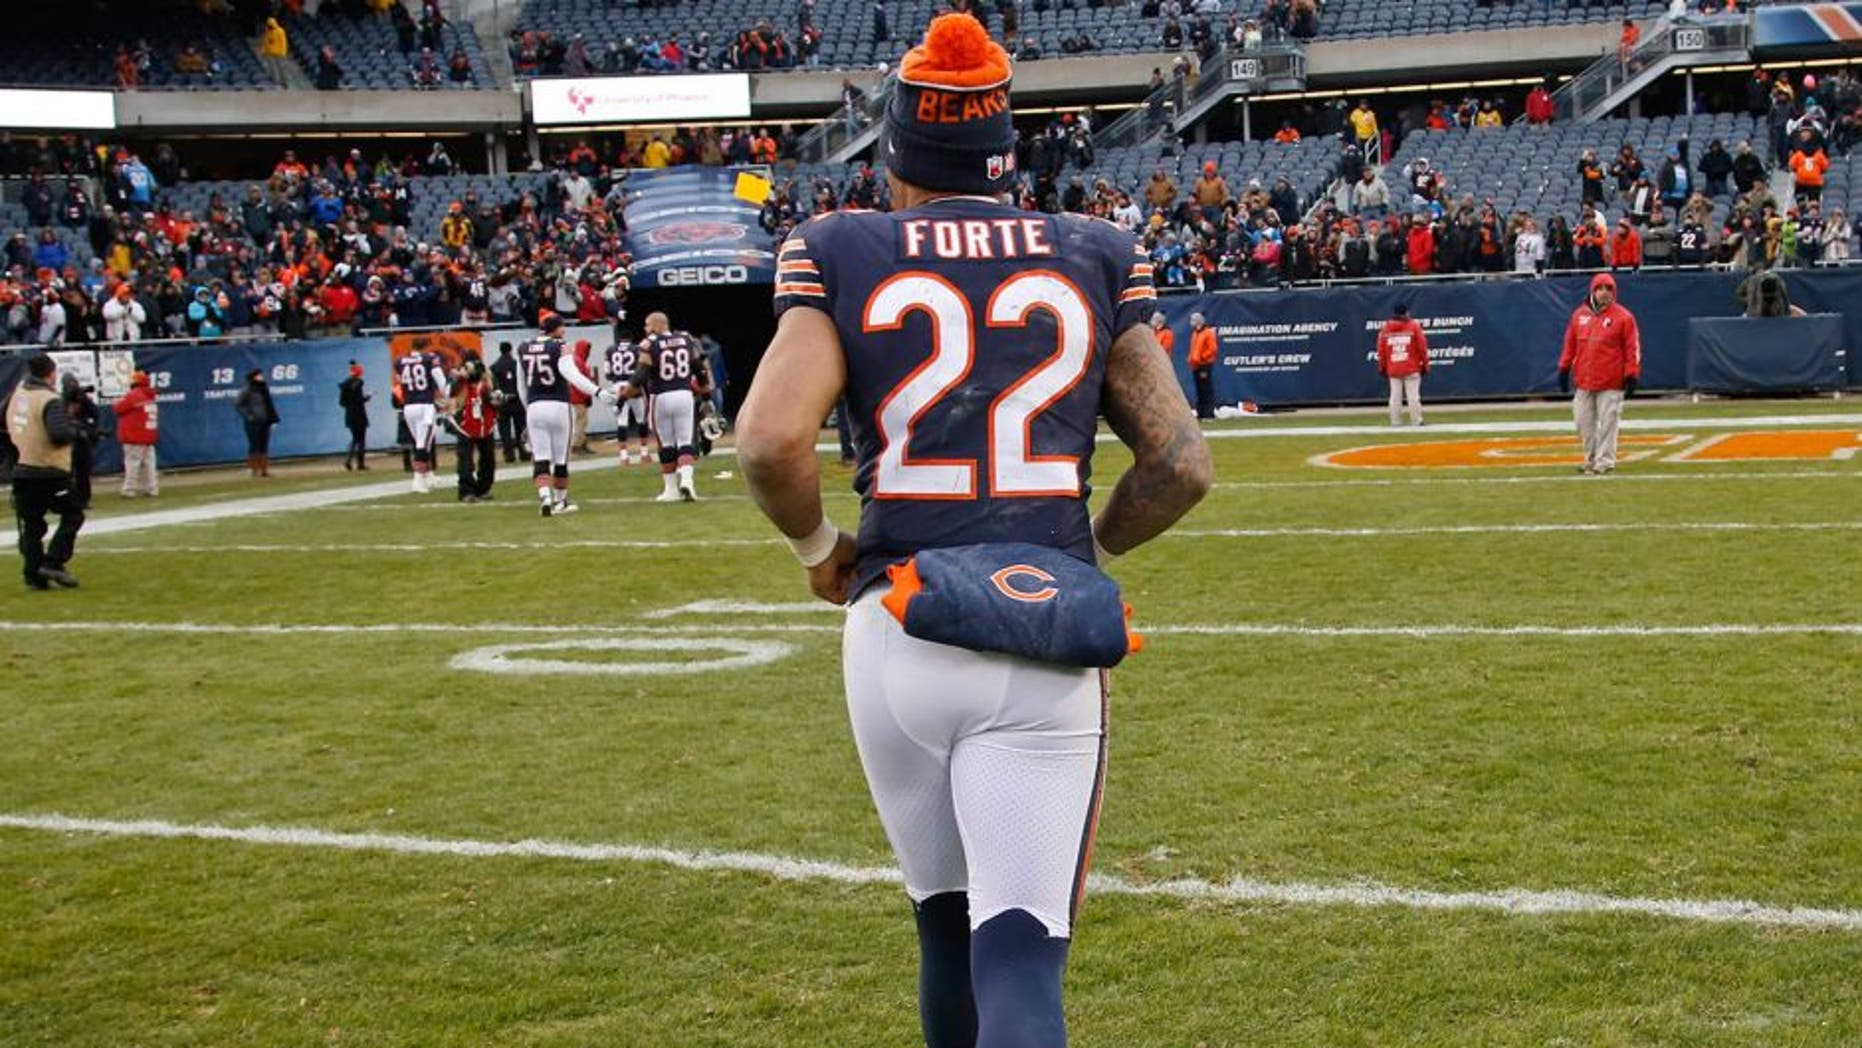 Jan 3, 2016; Chicago, IL, USA; Chicago Bears running back Matt Forte (22) runs off the field after the NFL game against the Detroit Lions at Soldier Field. The Lions won 24-20. Mandatory Credit: Kamil Krzaczynski-USA TODAY Sports